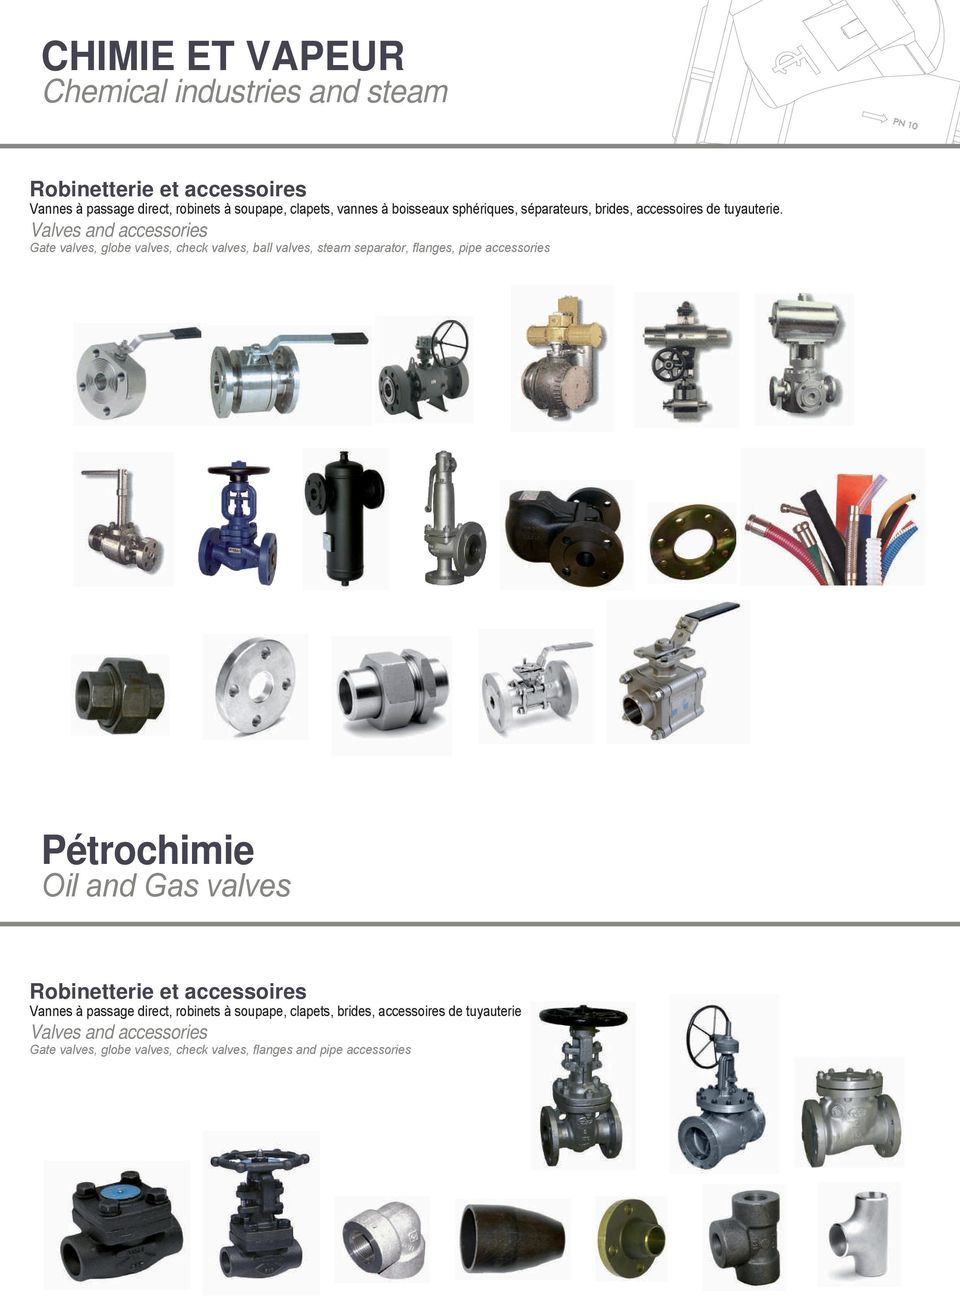 Valves and accessories Gate valves, globe valves, check valves, ball valves, steam separator, flanges, pipe accessories Pétrochimie Oil and